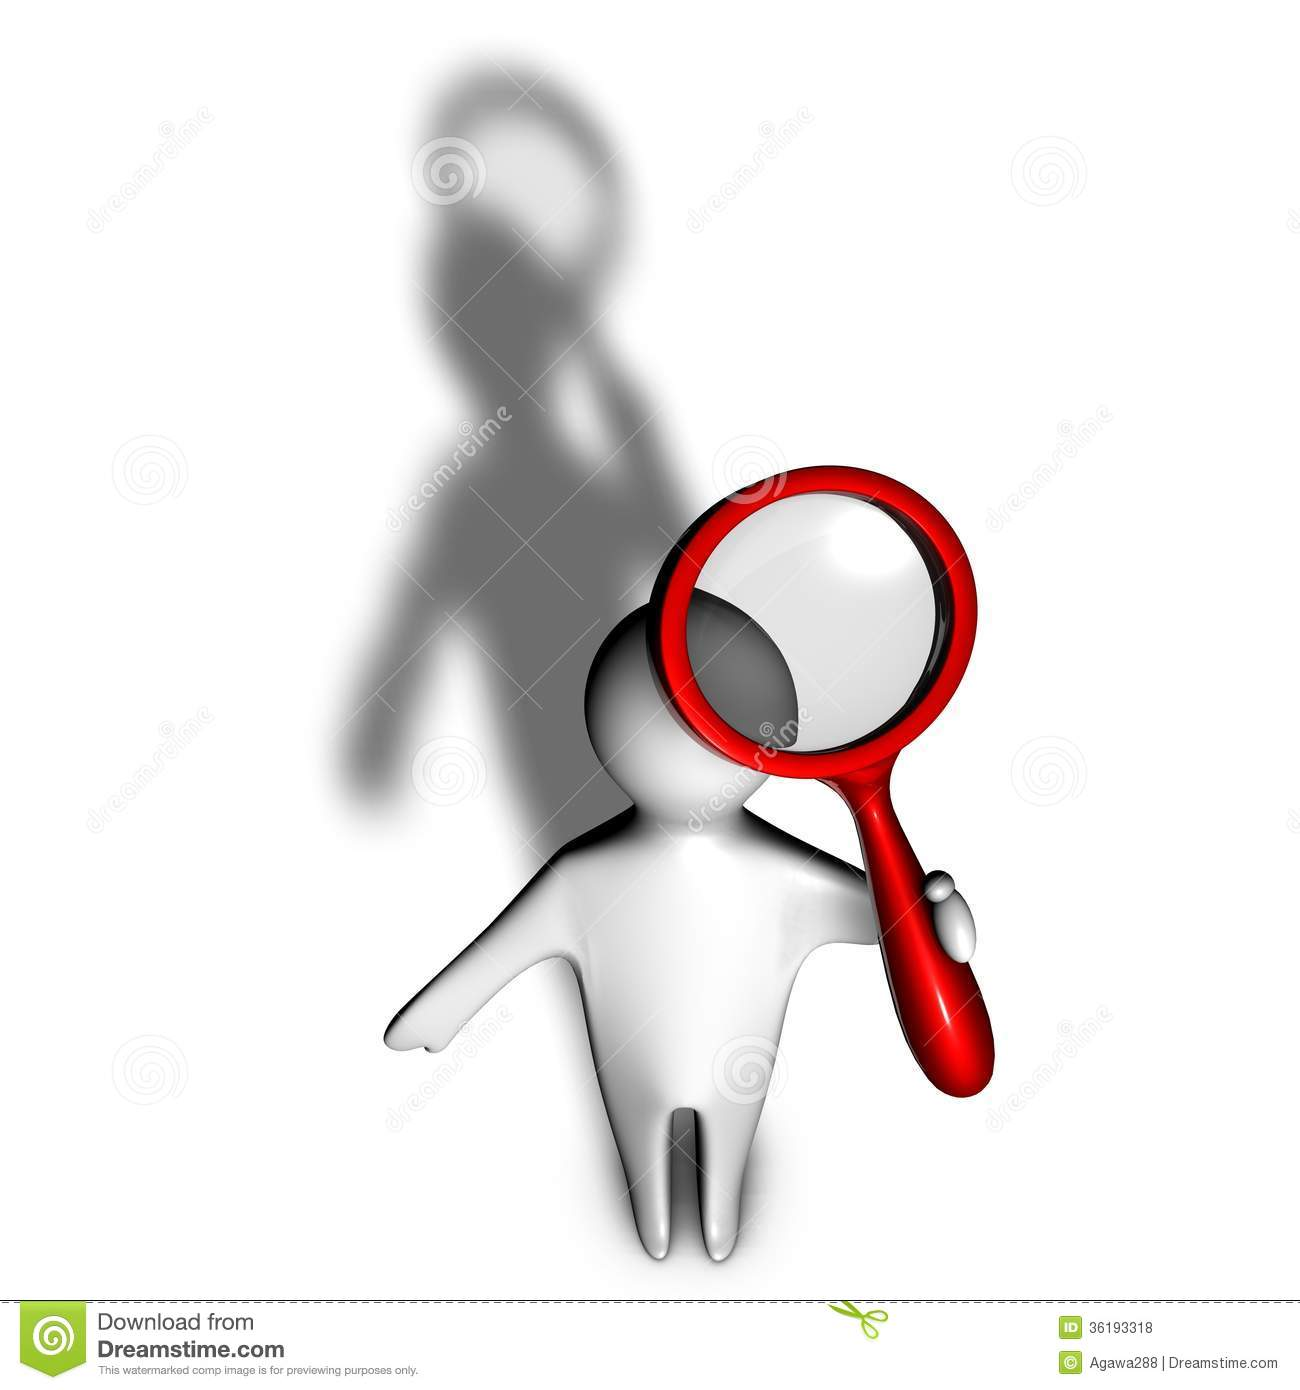 clip art job shadowing clipart clipart kid 3d person shadow seeking informations magnifying glass